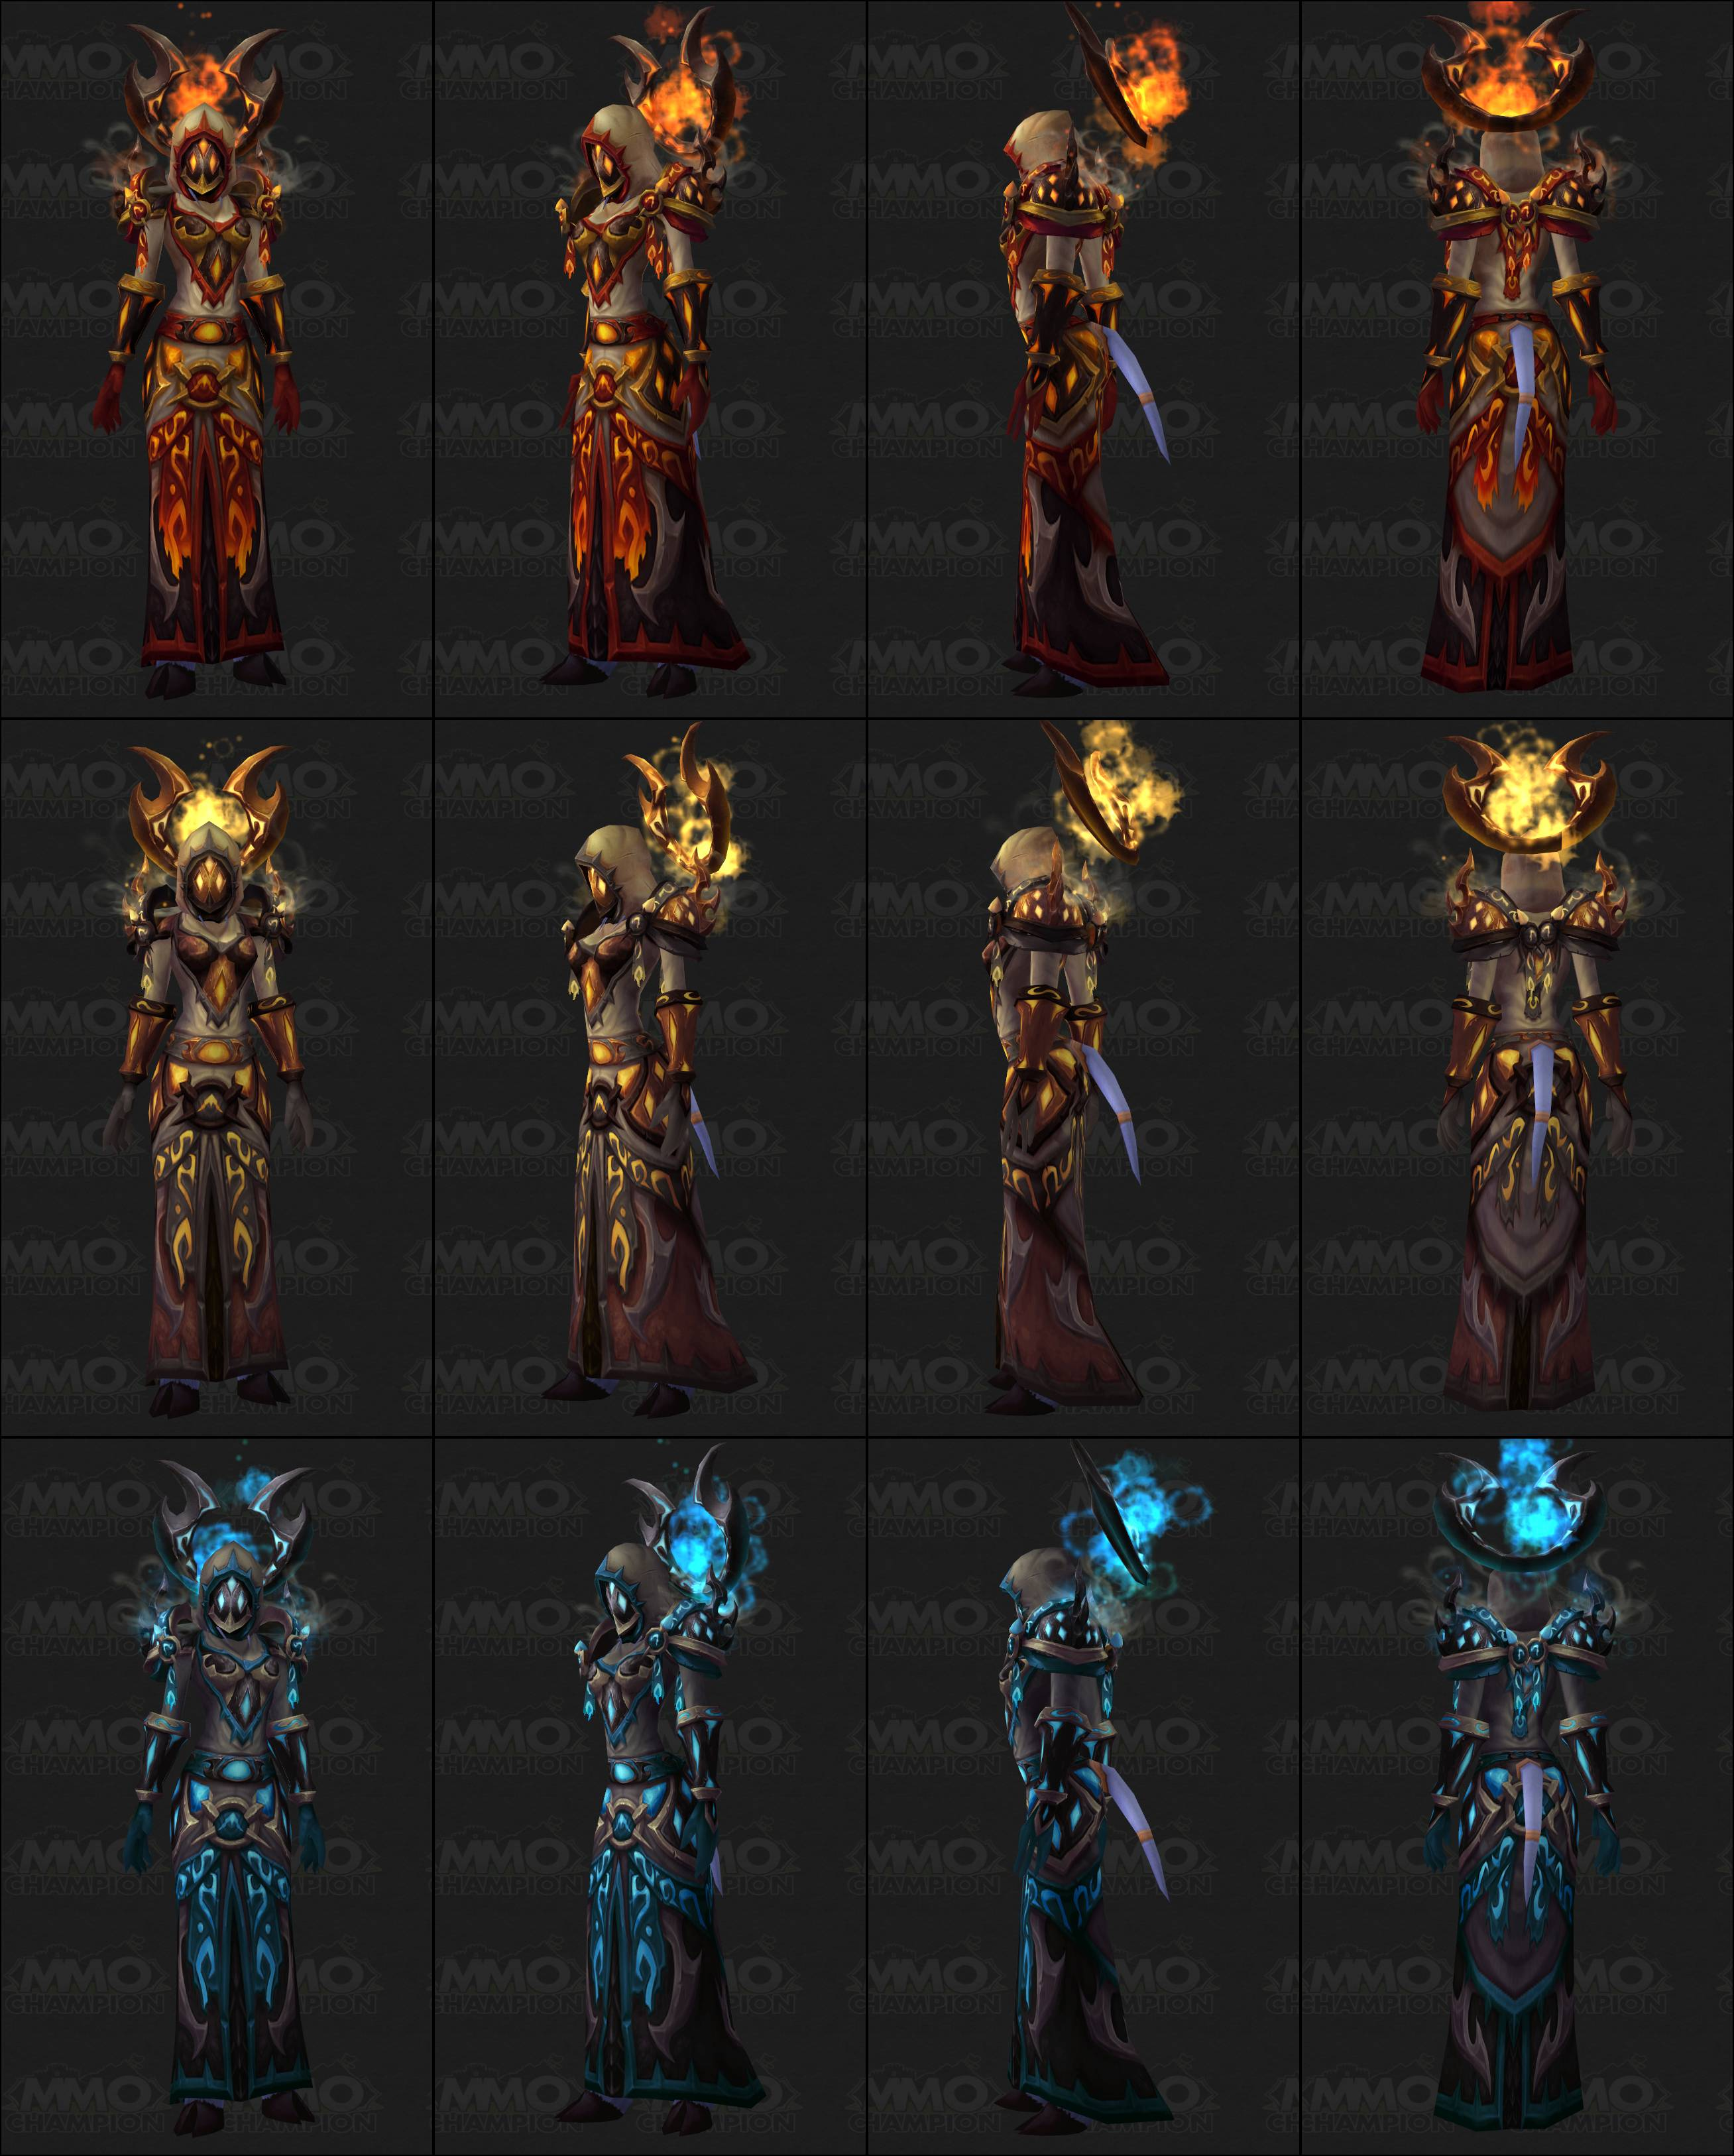 Pally wow draenei female wallpaper adult clips